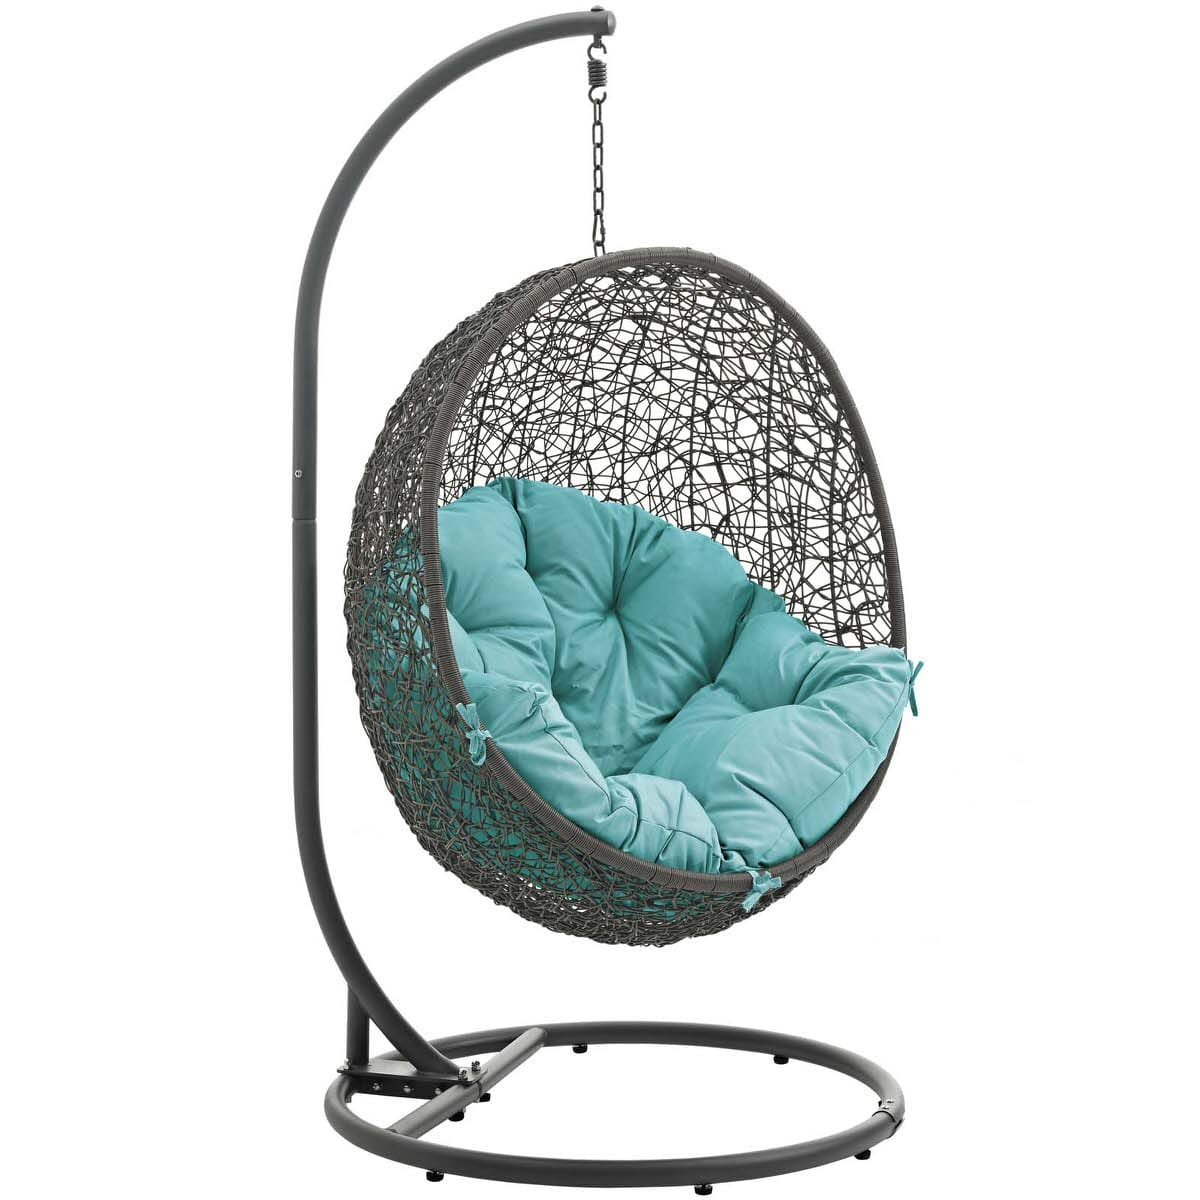 Hide Outdoor Patio Swing Chair With Stand Gray Turquoise By Modern Living ( Modern Living)